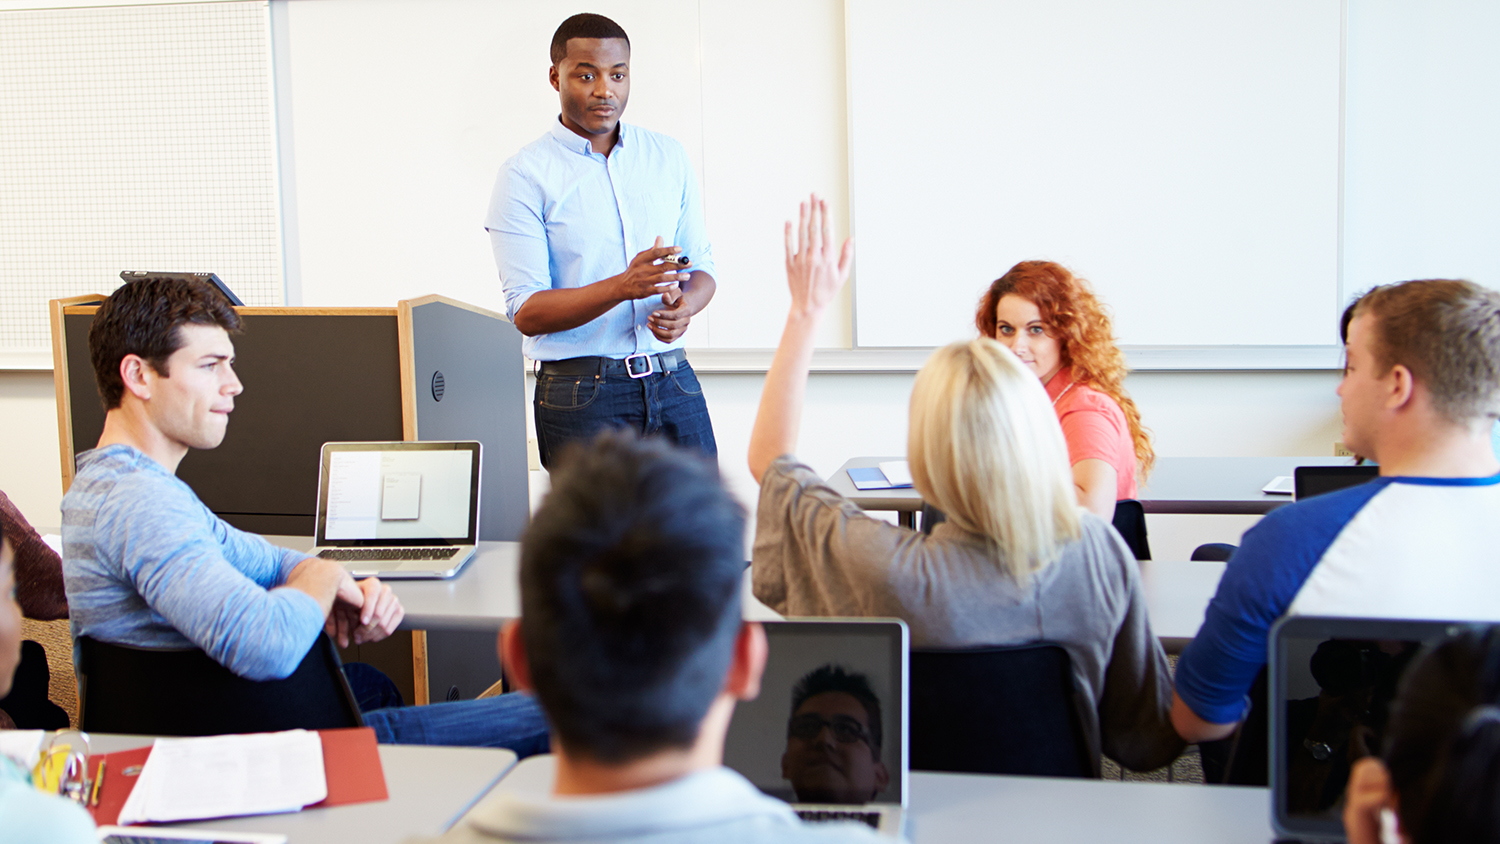 Students participating in a class discussion